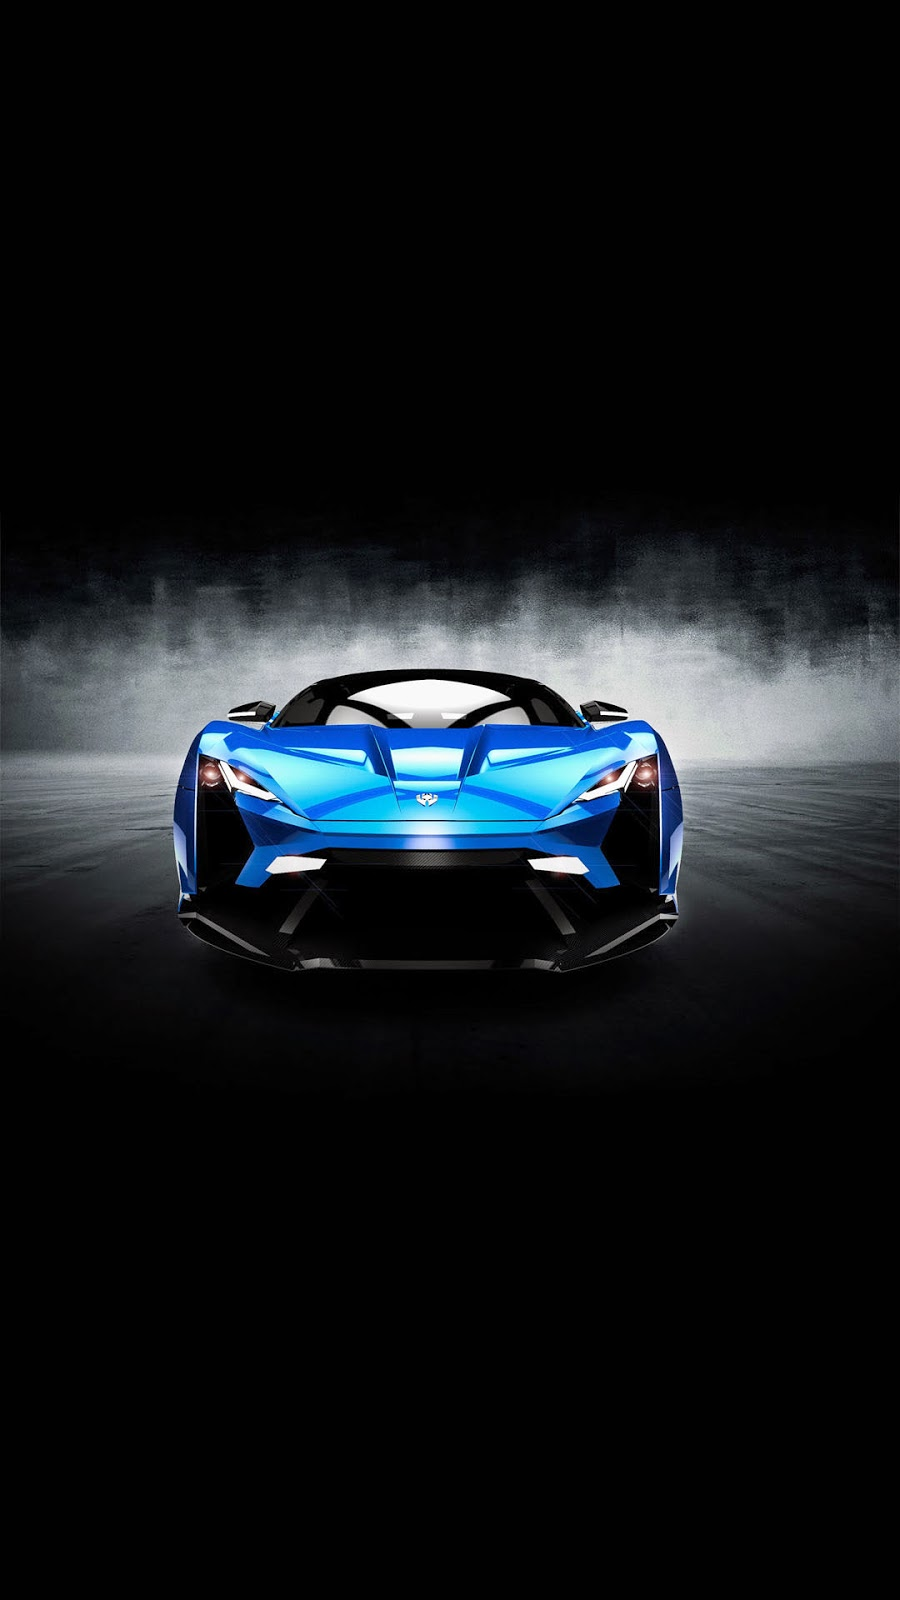 Marvelous Galaxy Note 3 Wallpaper   Supercar Blue